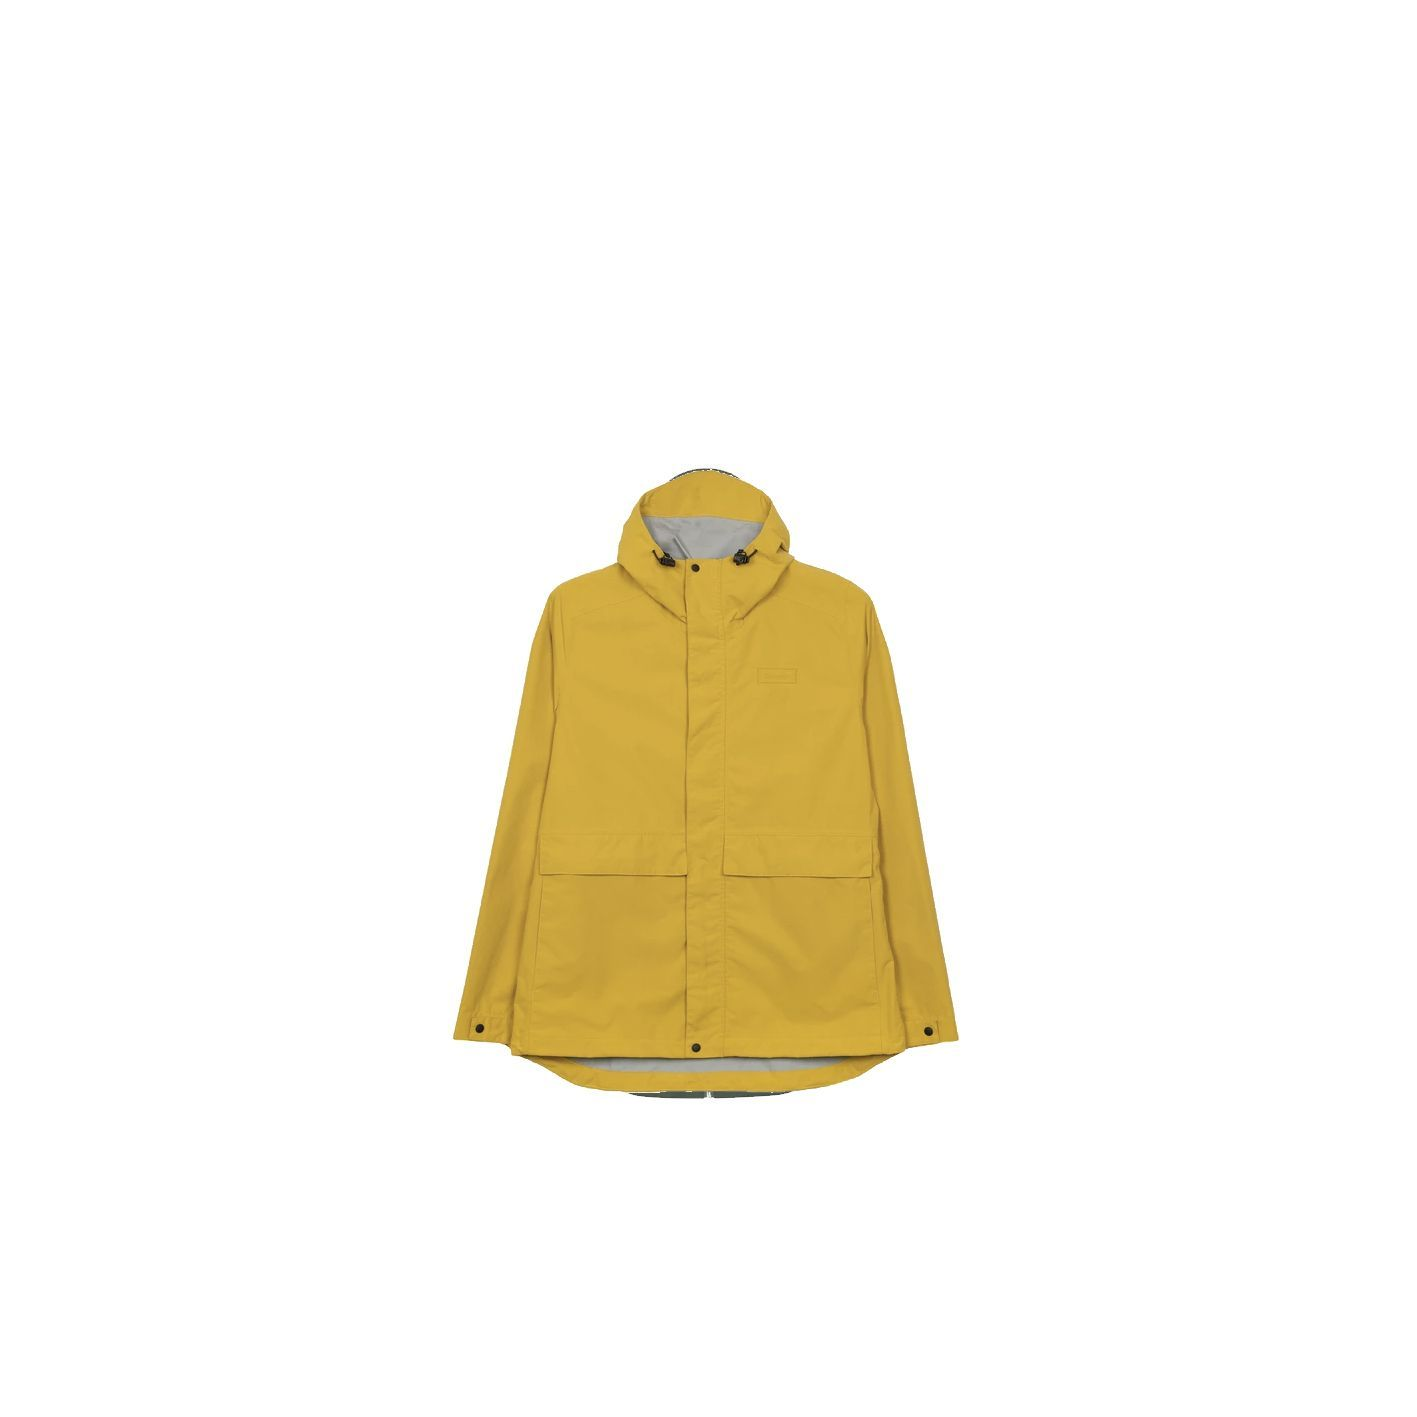 Cheap Rain Jacket Women S Key